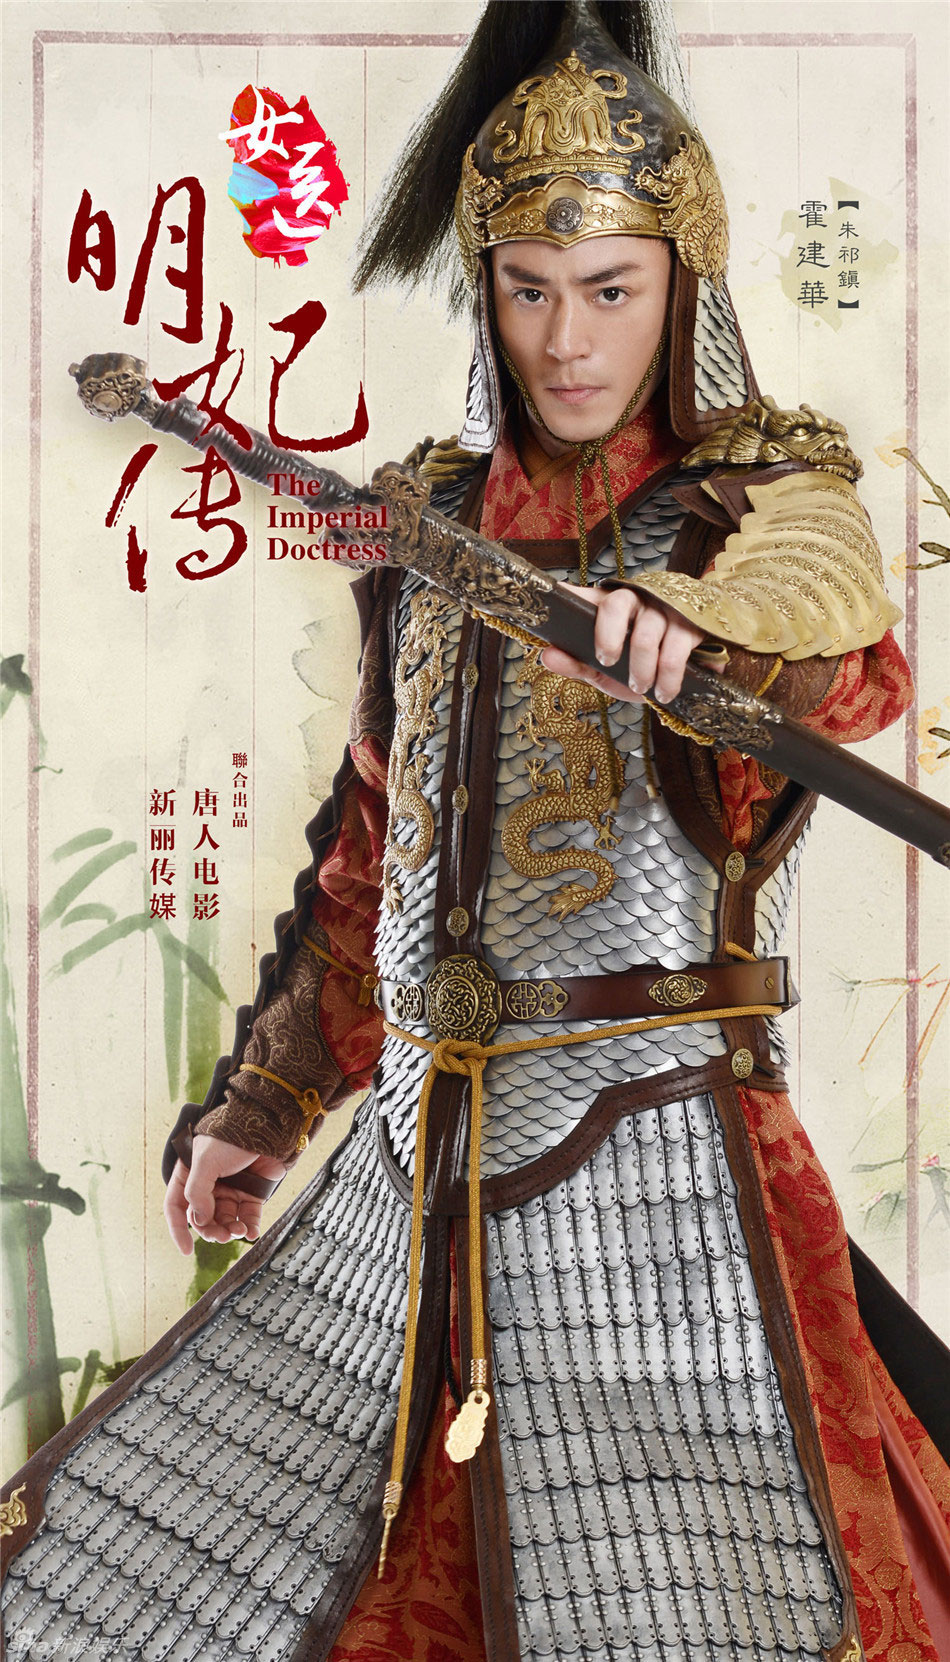 Wallace Huo Imperial Doctress Chinese drama